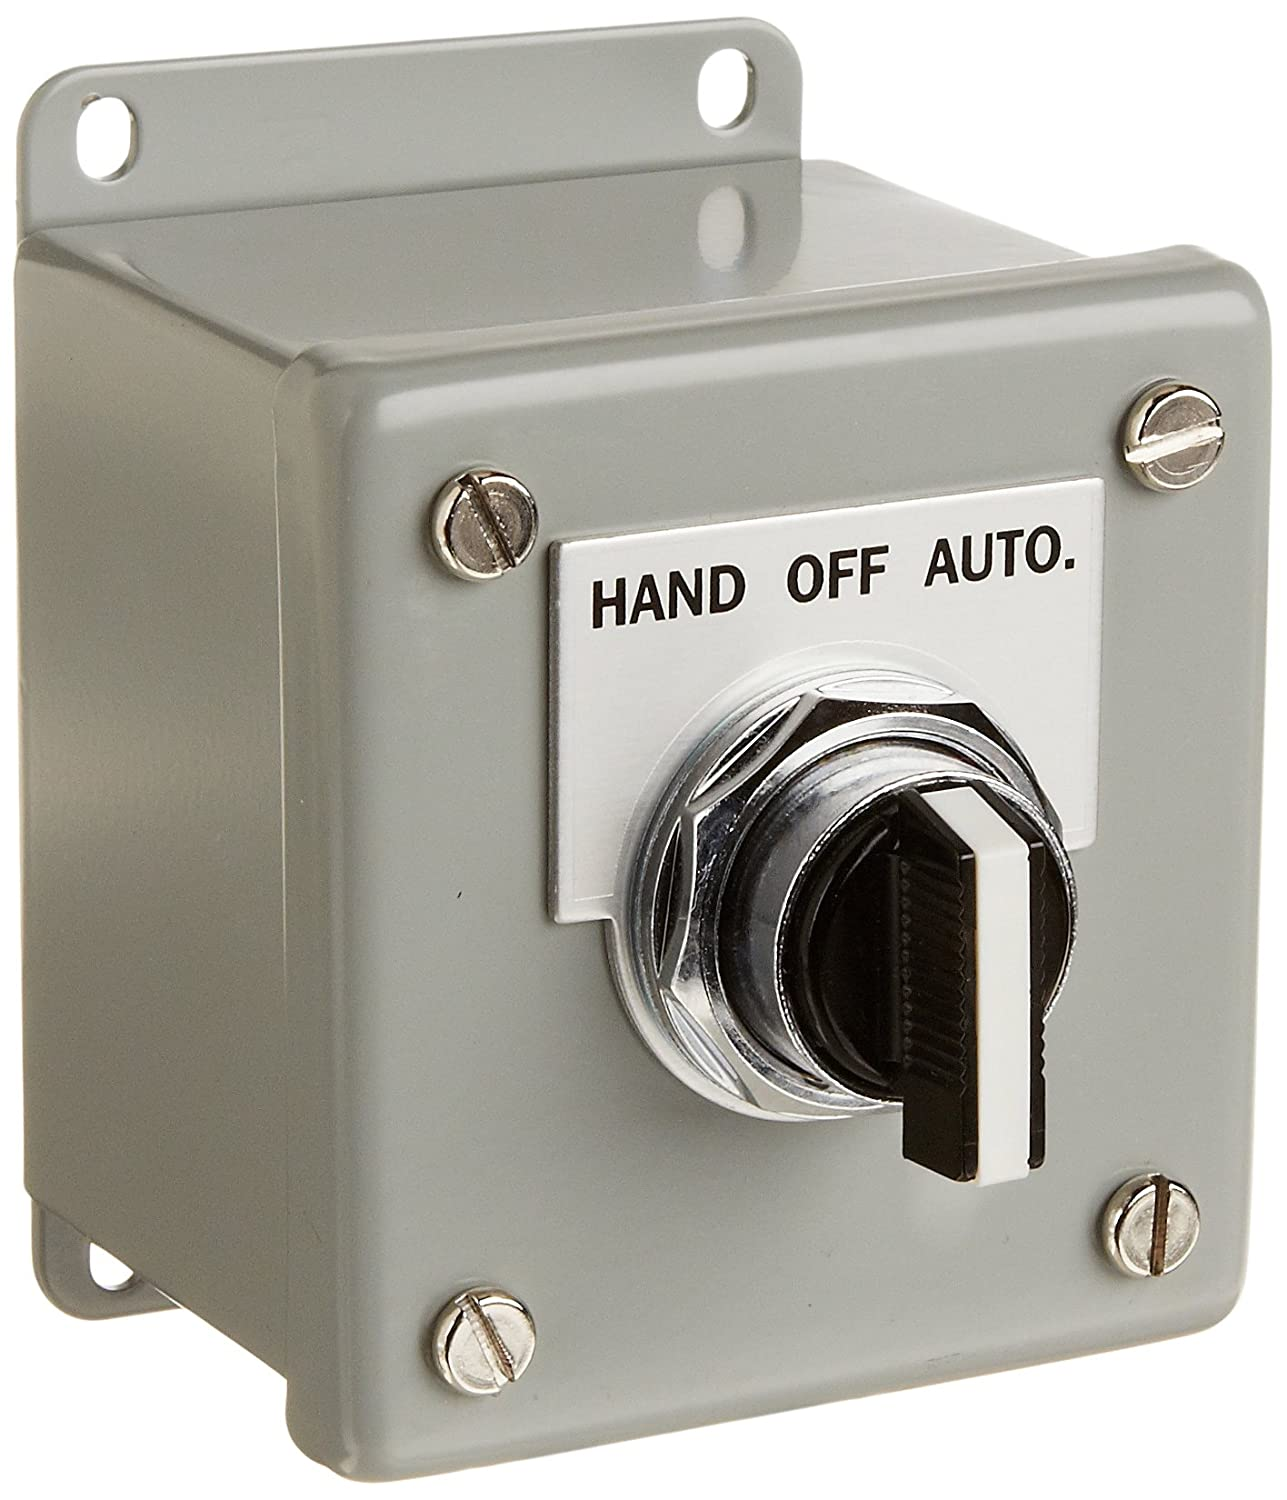 Hand Off Auto Switch Wiring Diagram | Wiring Library